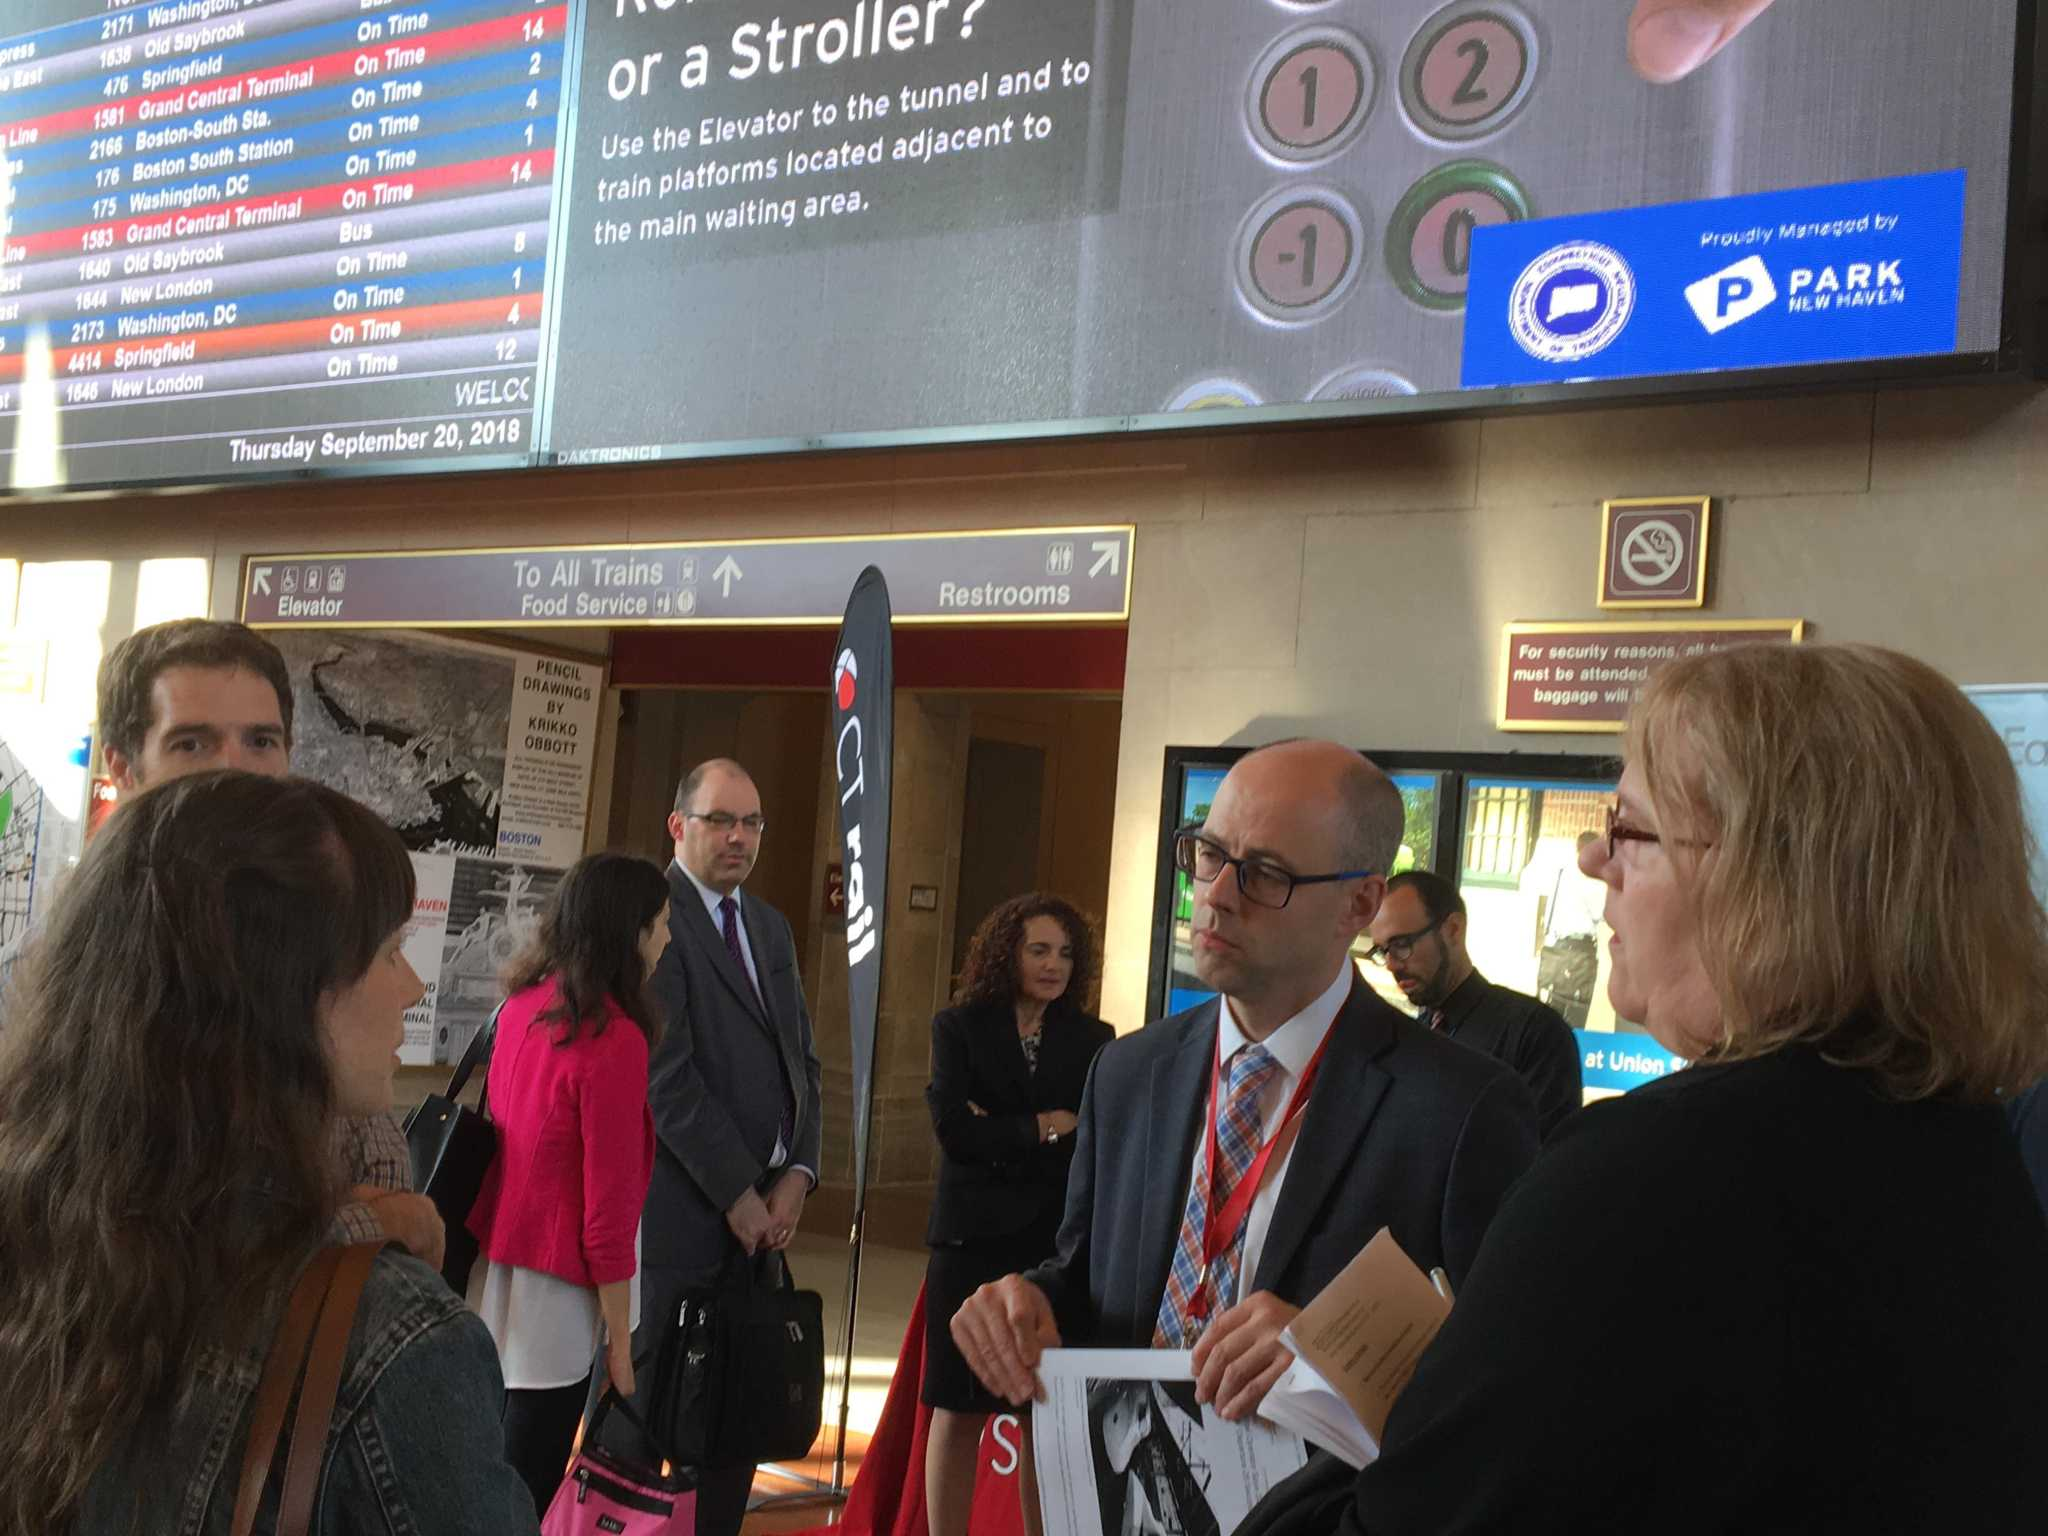 6 Shore Line East trips returning to trains from buses next week